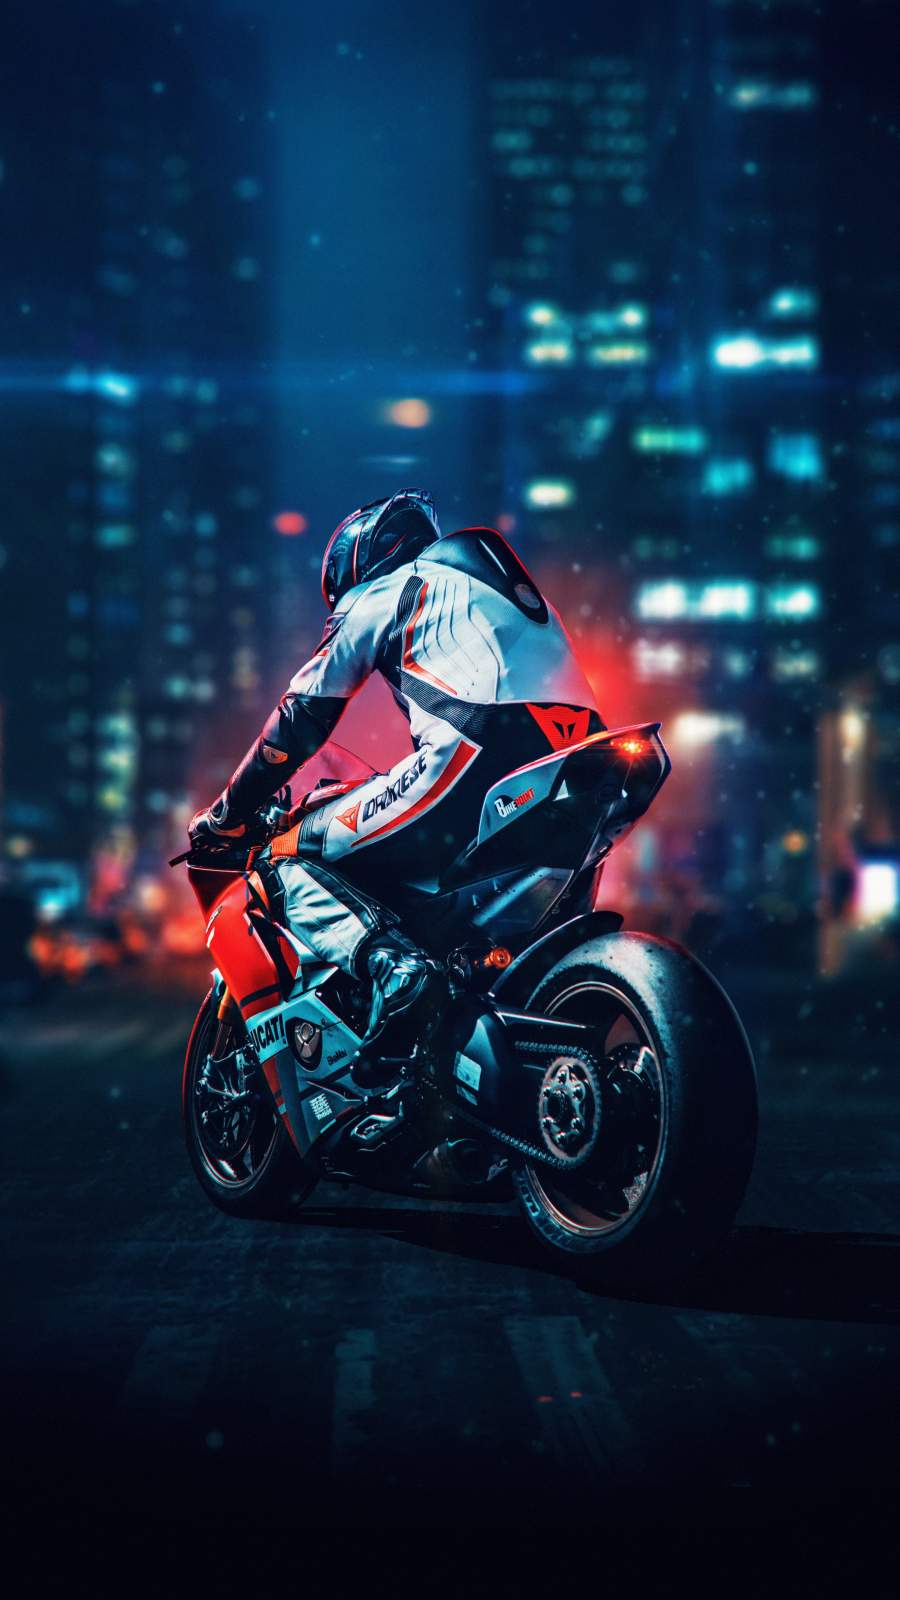 Motorcycle Rider iPhone Wallpaper